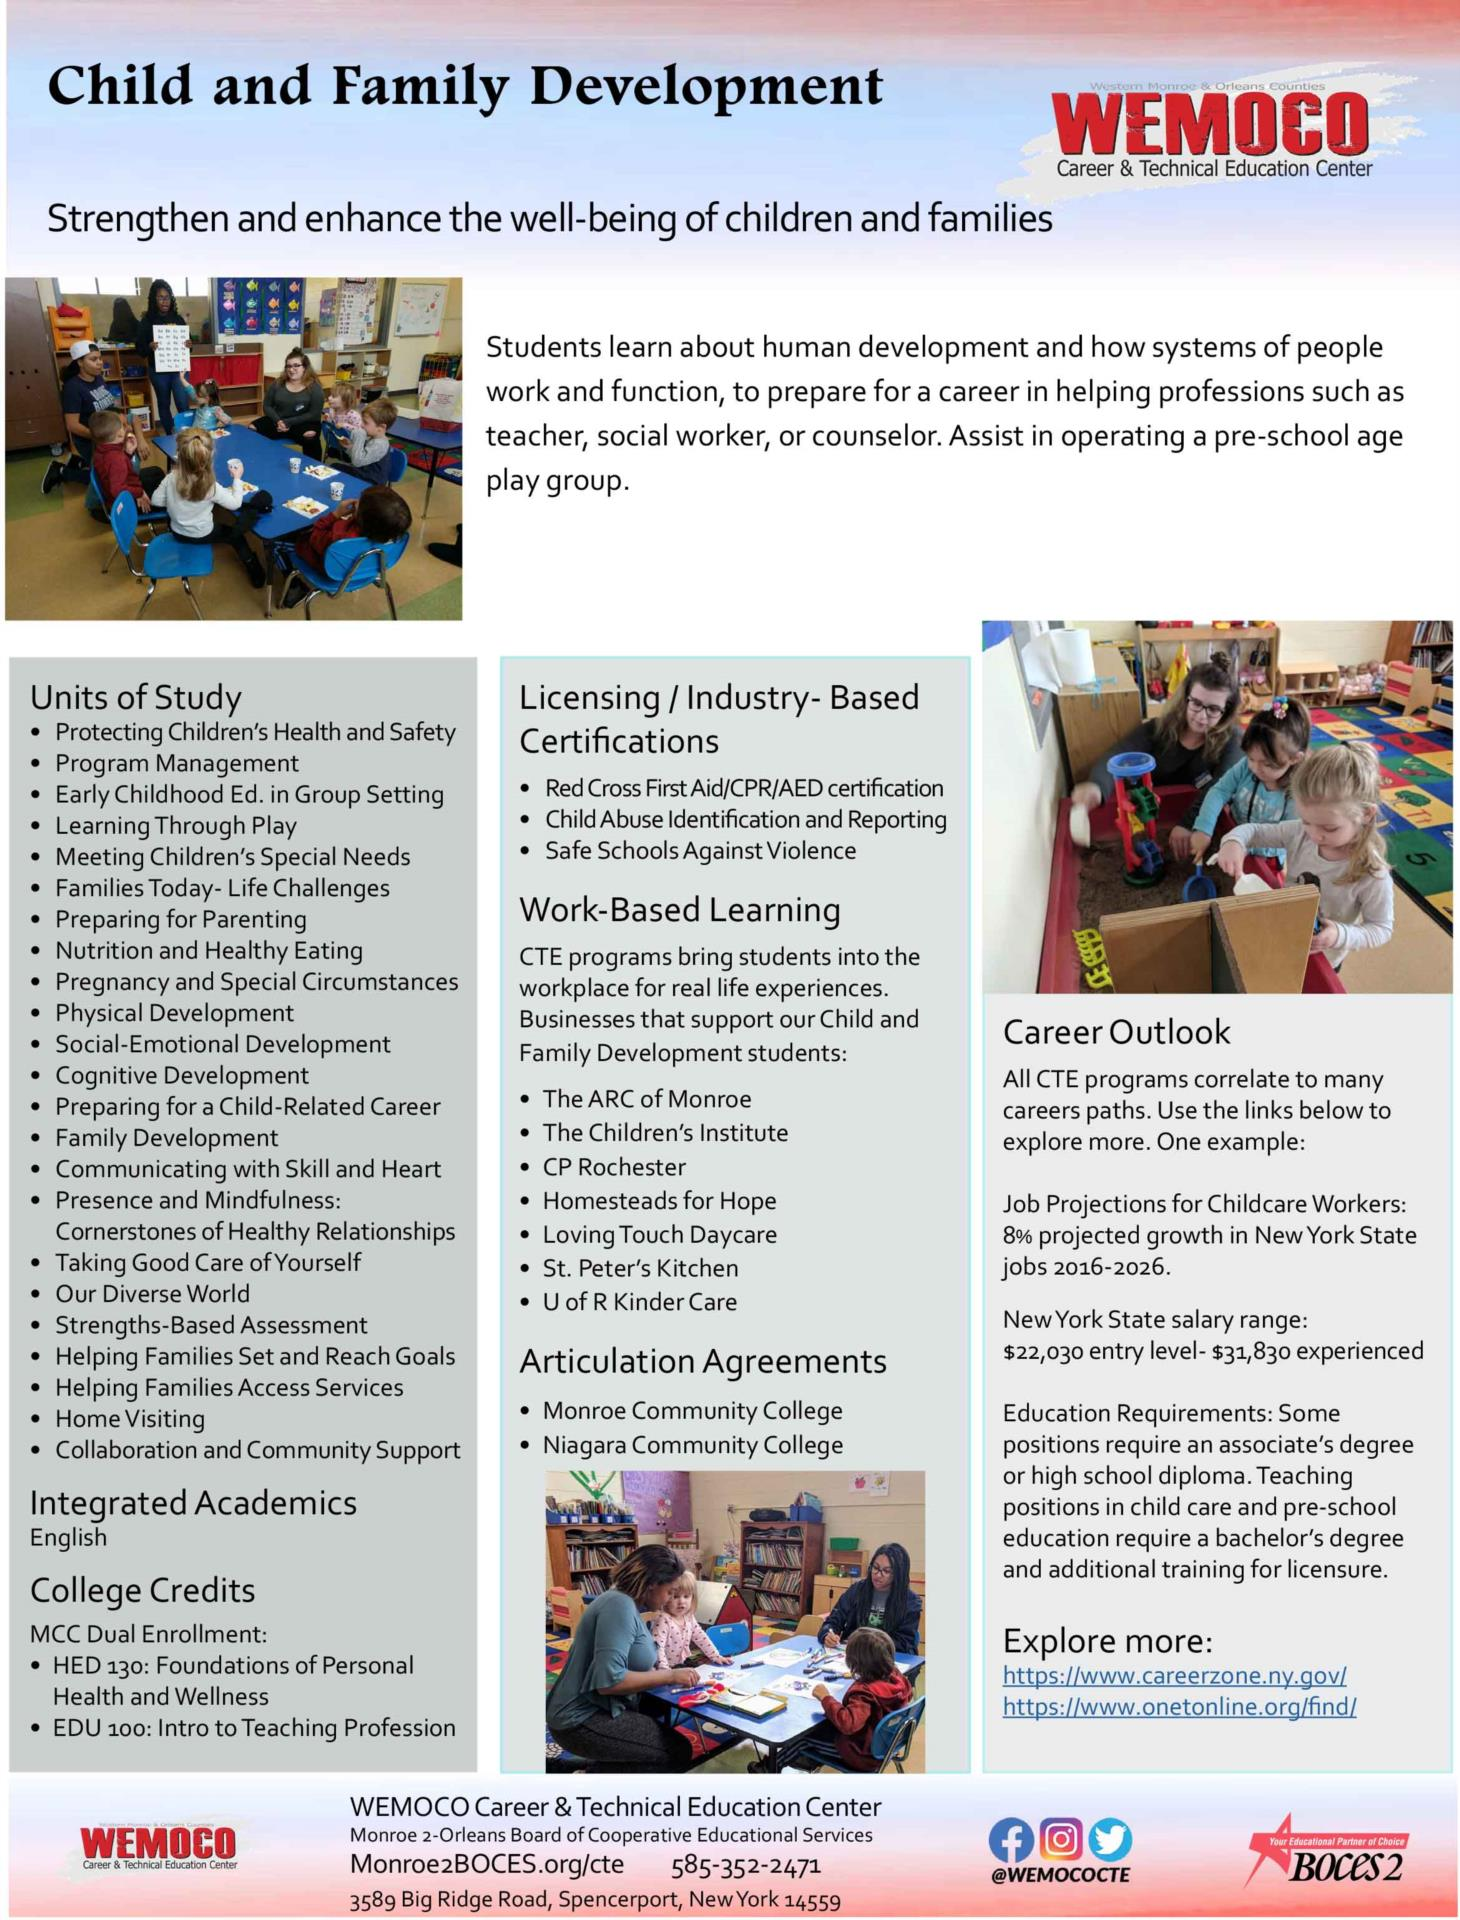 Download a PDF overview of the Child and Family Development program information